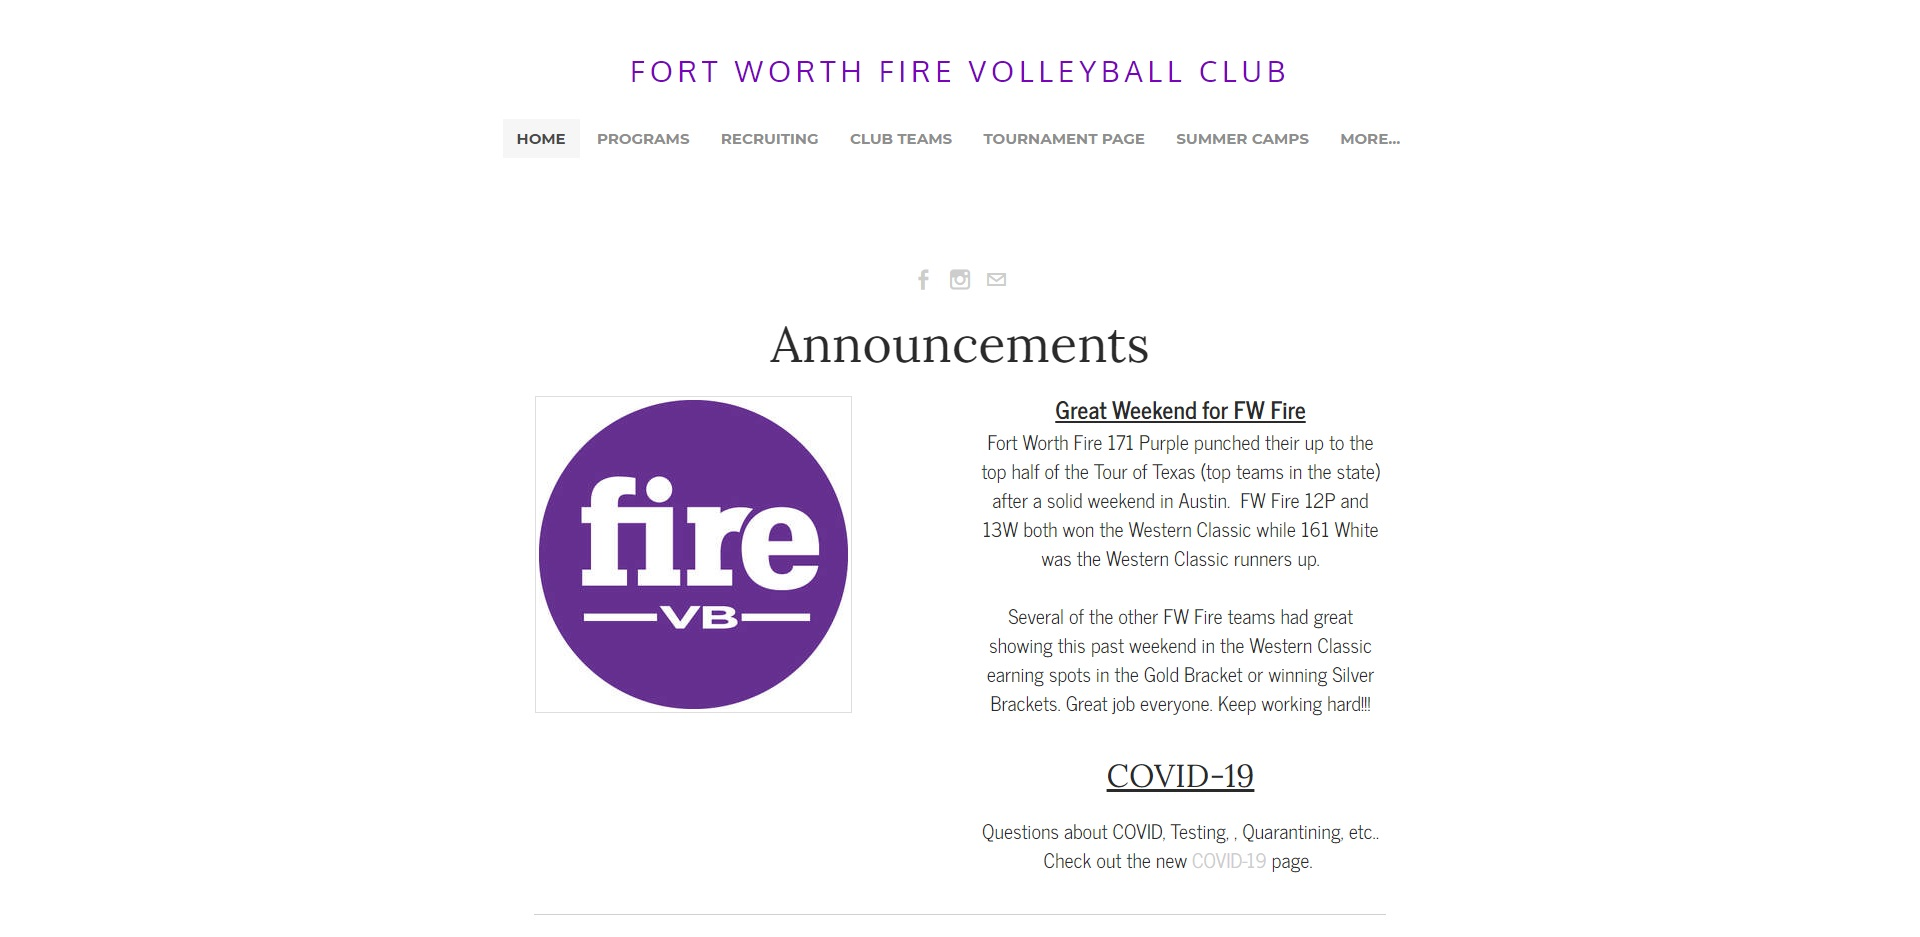 Best Sports Clubs in Fort Worth